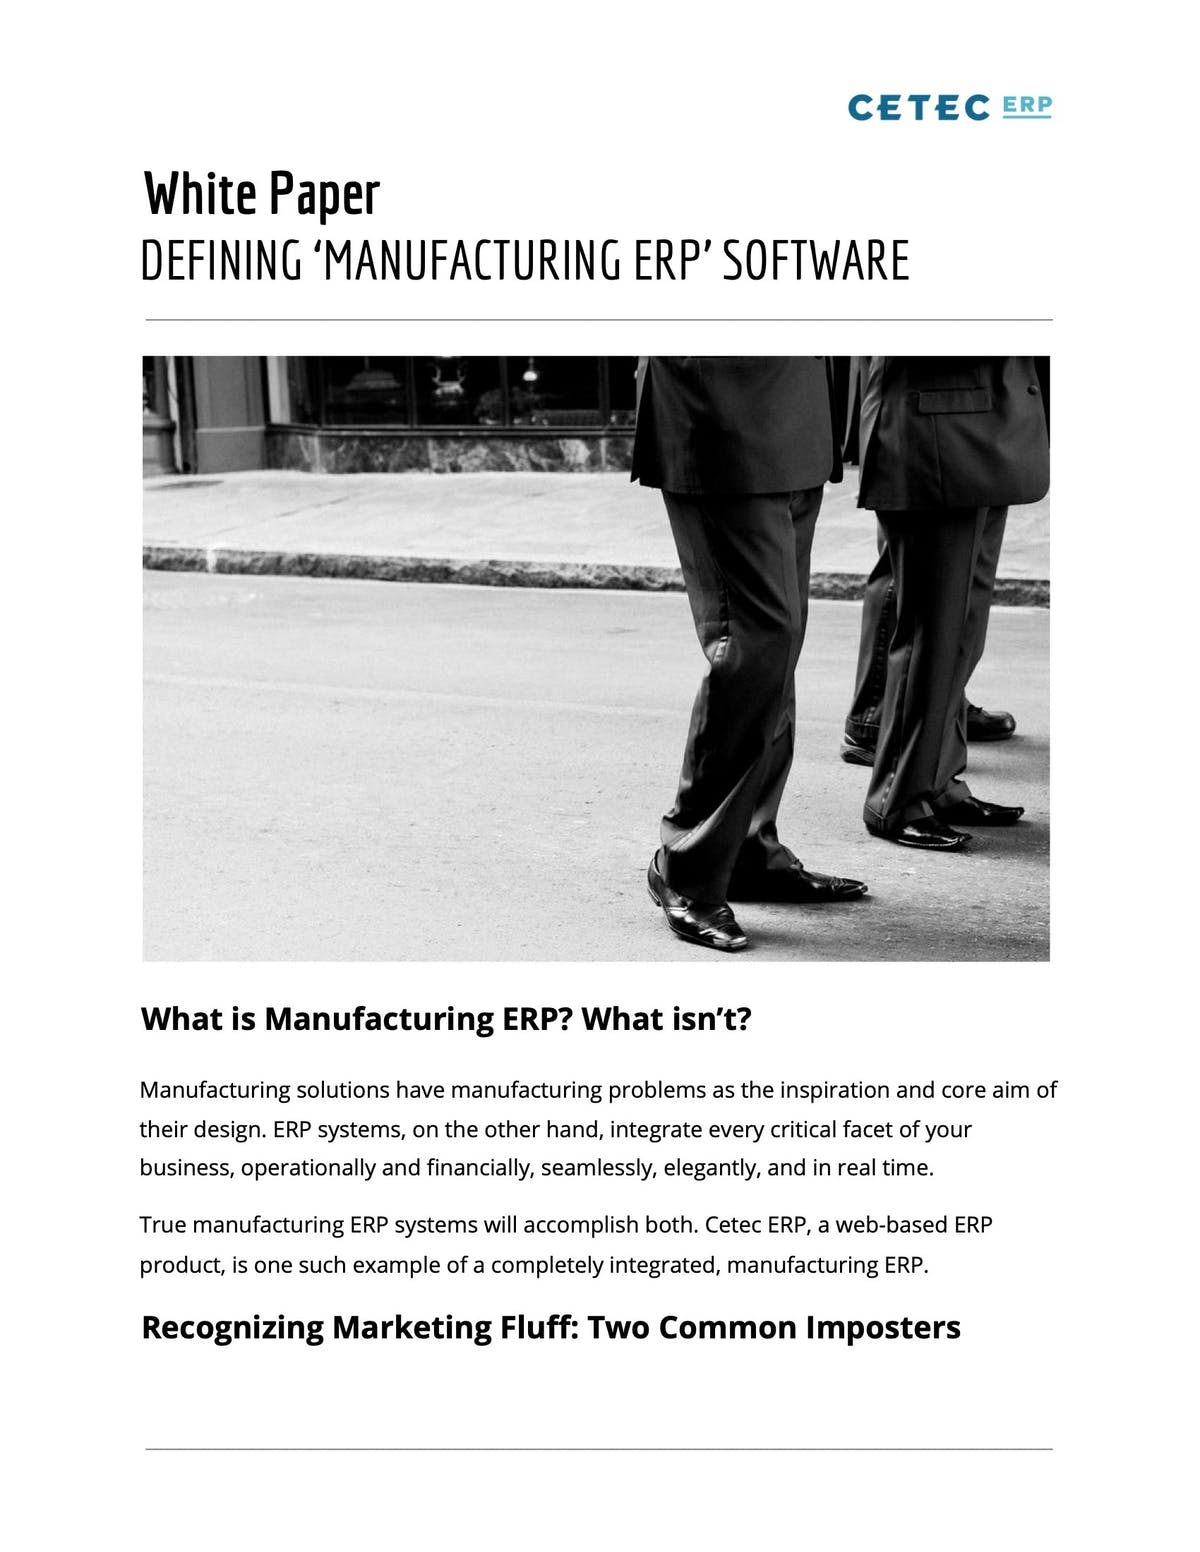 Cetec ERP White Paper - Defining 'Manufacturing ERP' Software